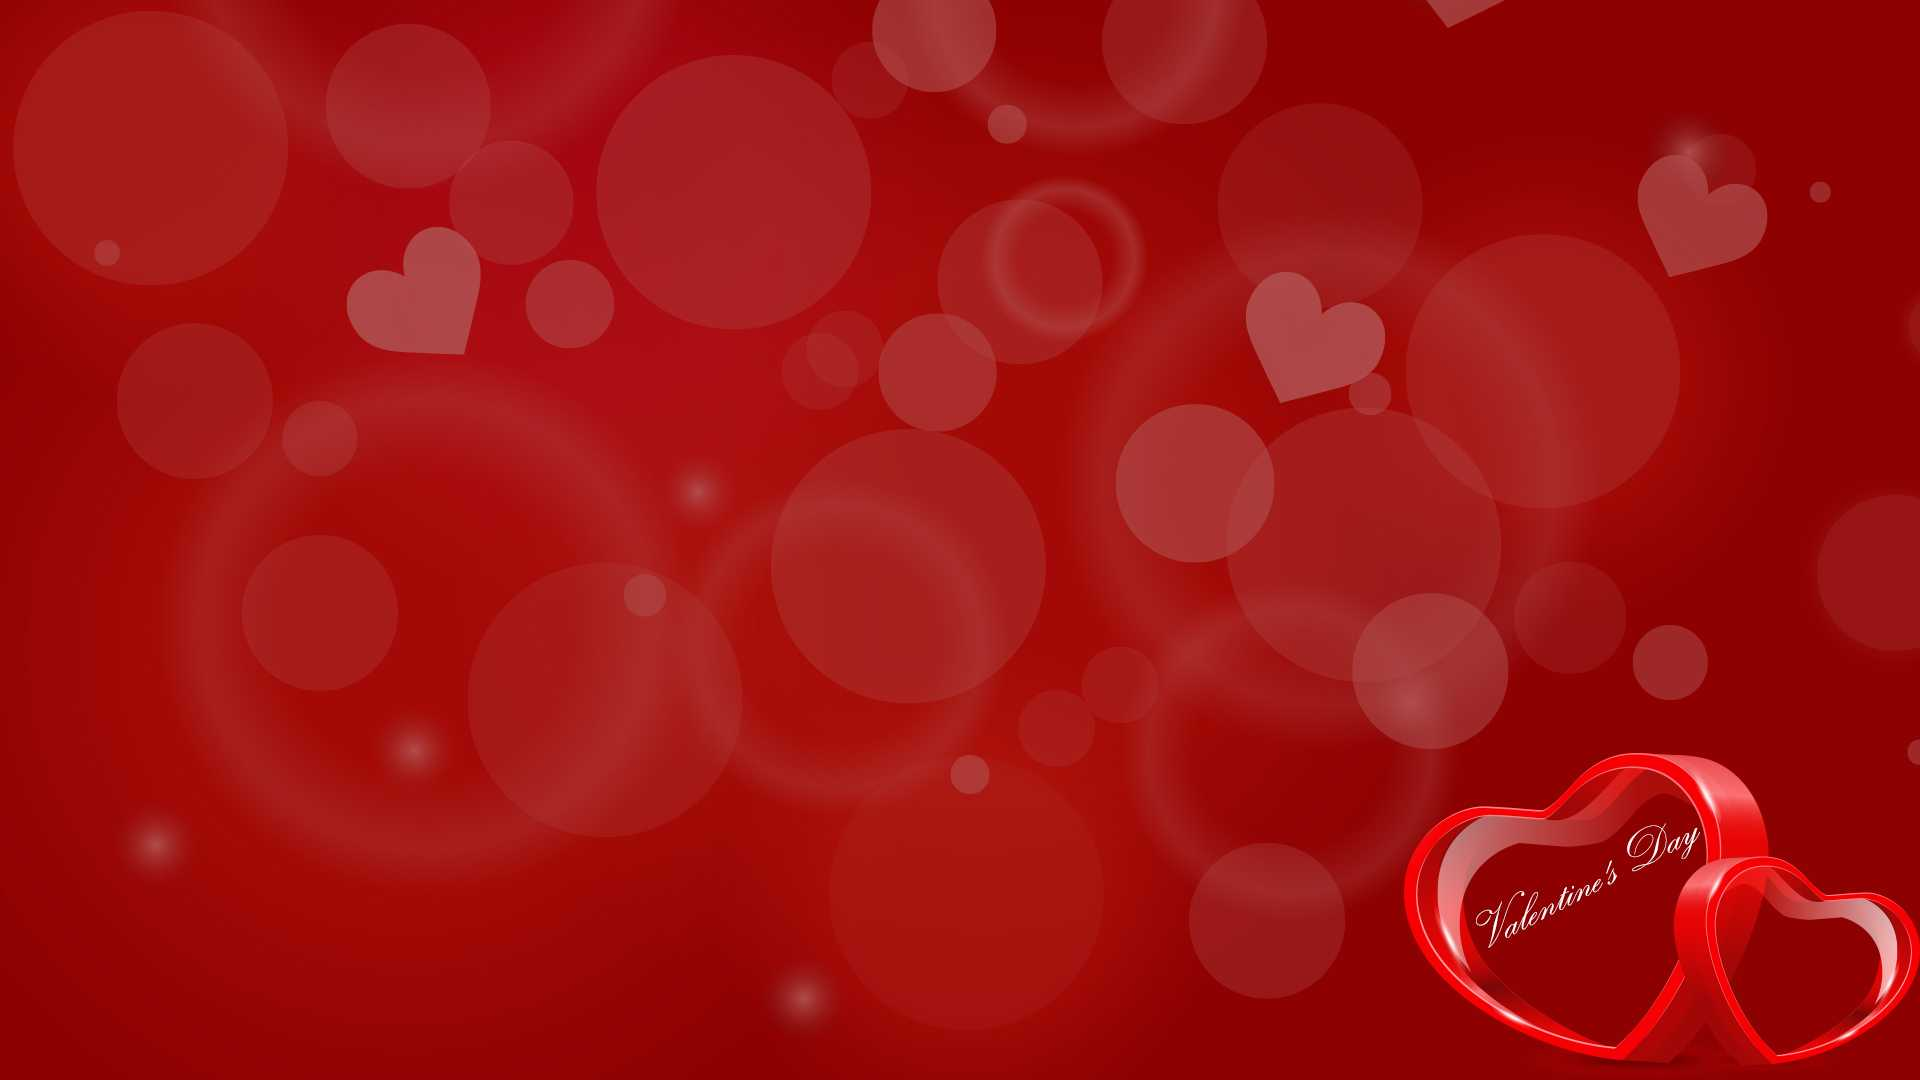 Valentines Day Heart Background For Powerpoint - Love Ppt Throughout Valentine Powerpoint Templates Free